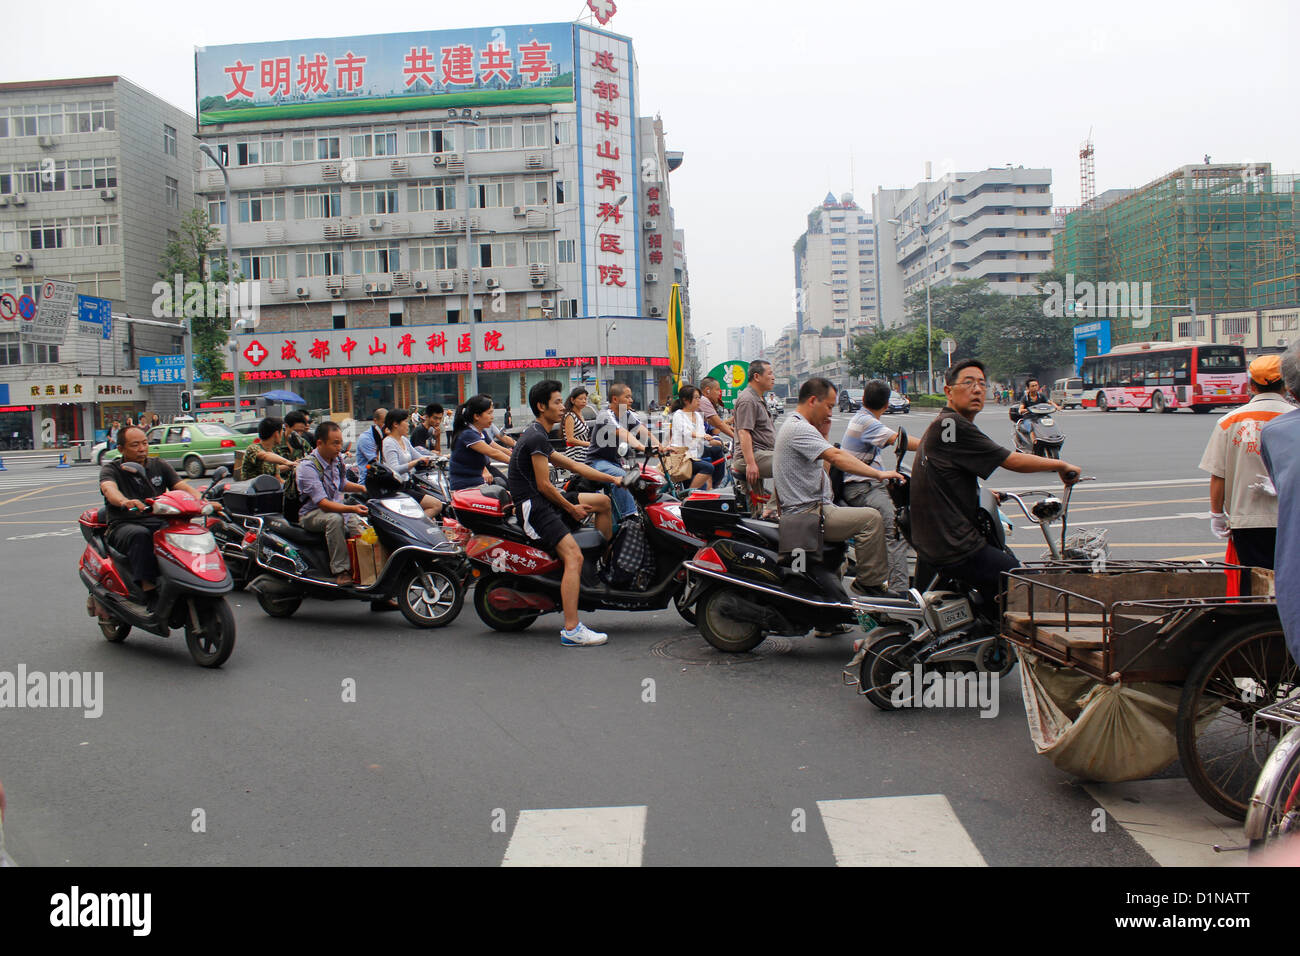 chinese waiting in a traffic light on minibike moped a road in chengdu china - Stock Image